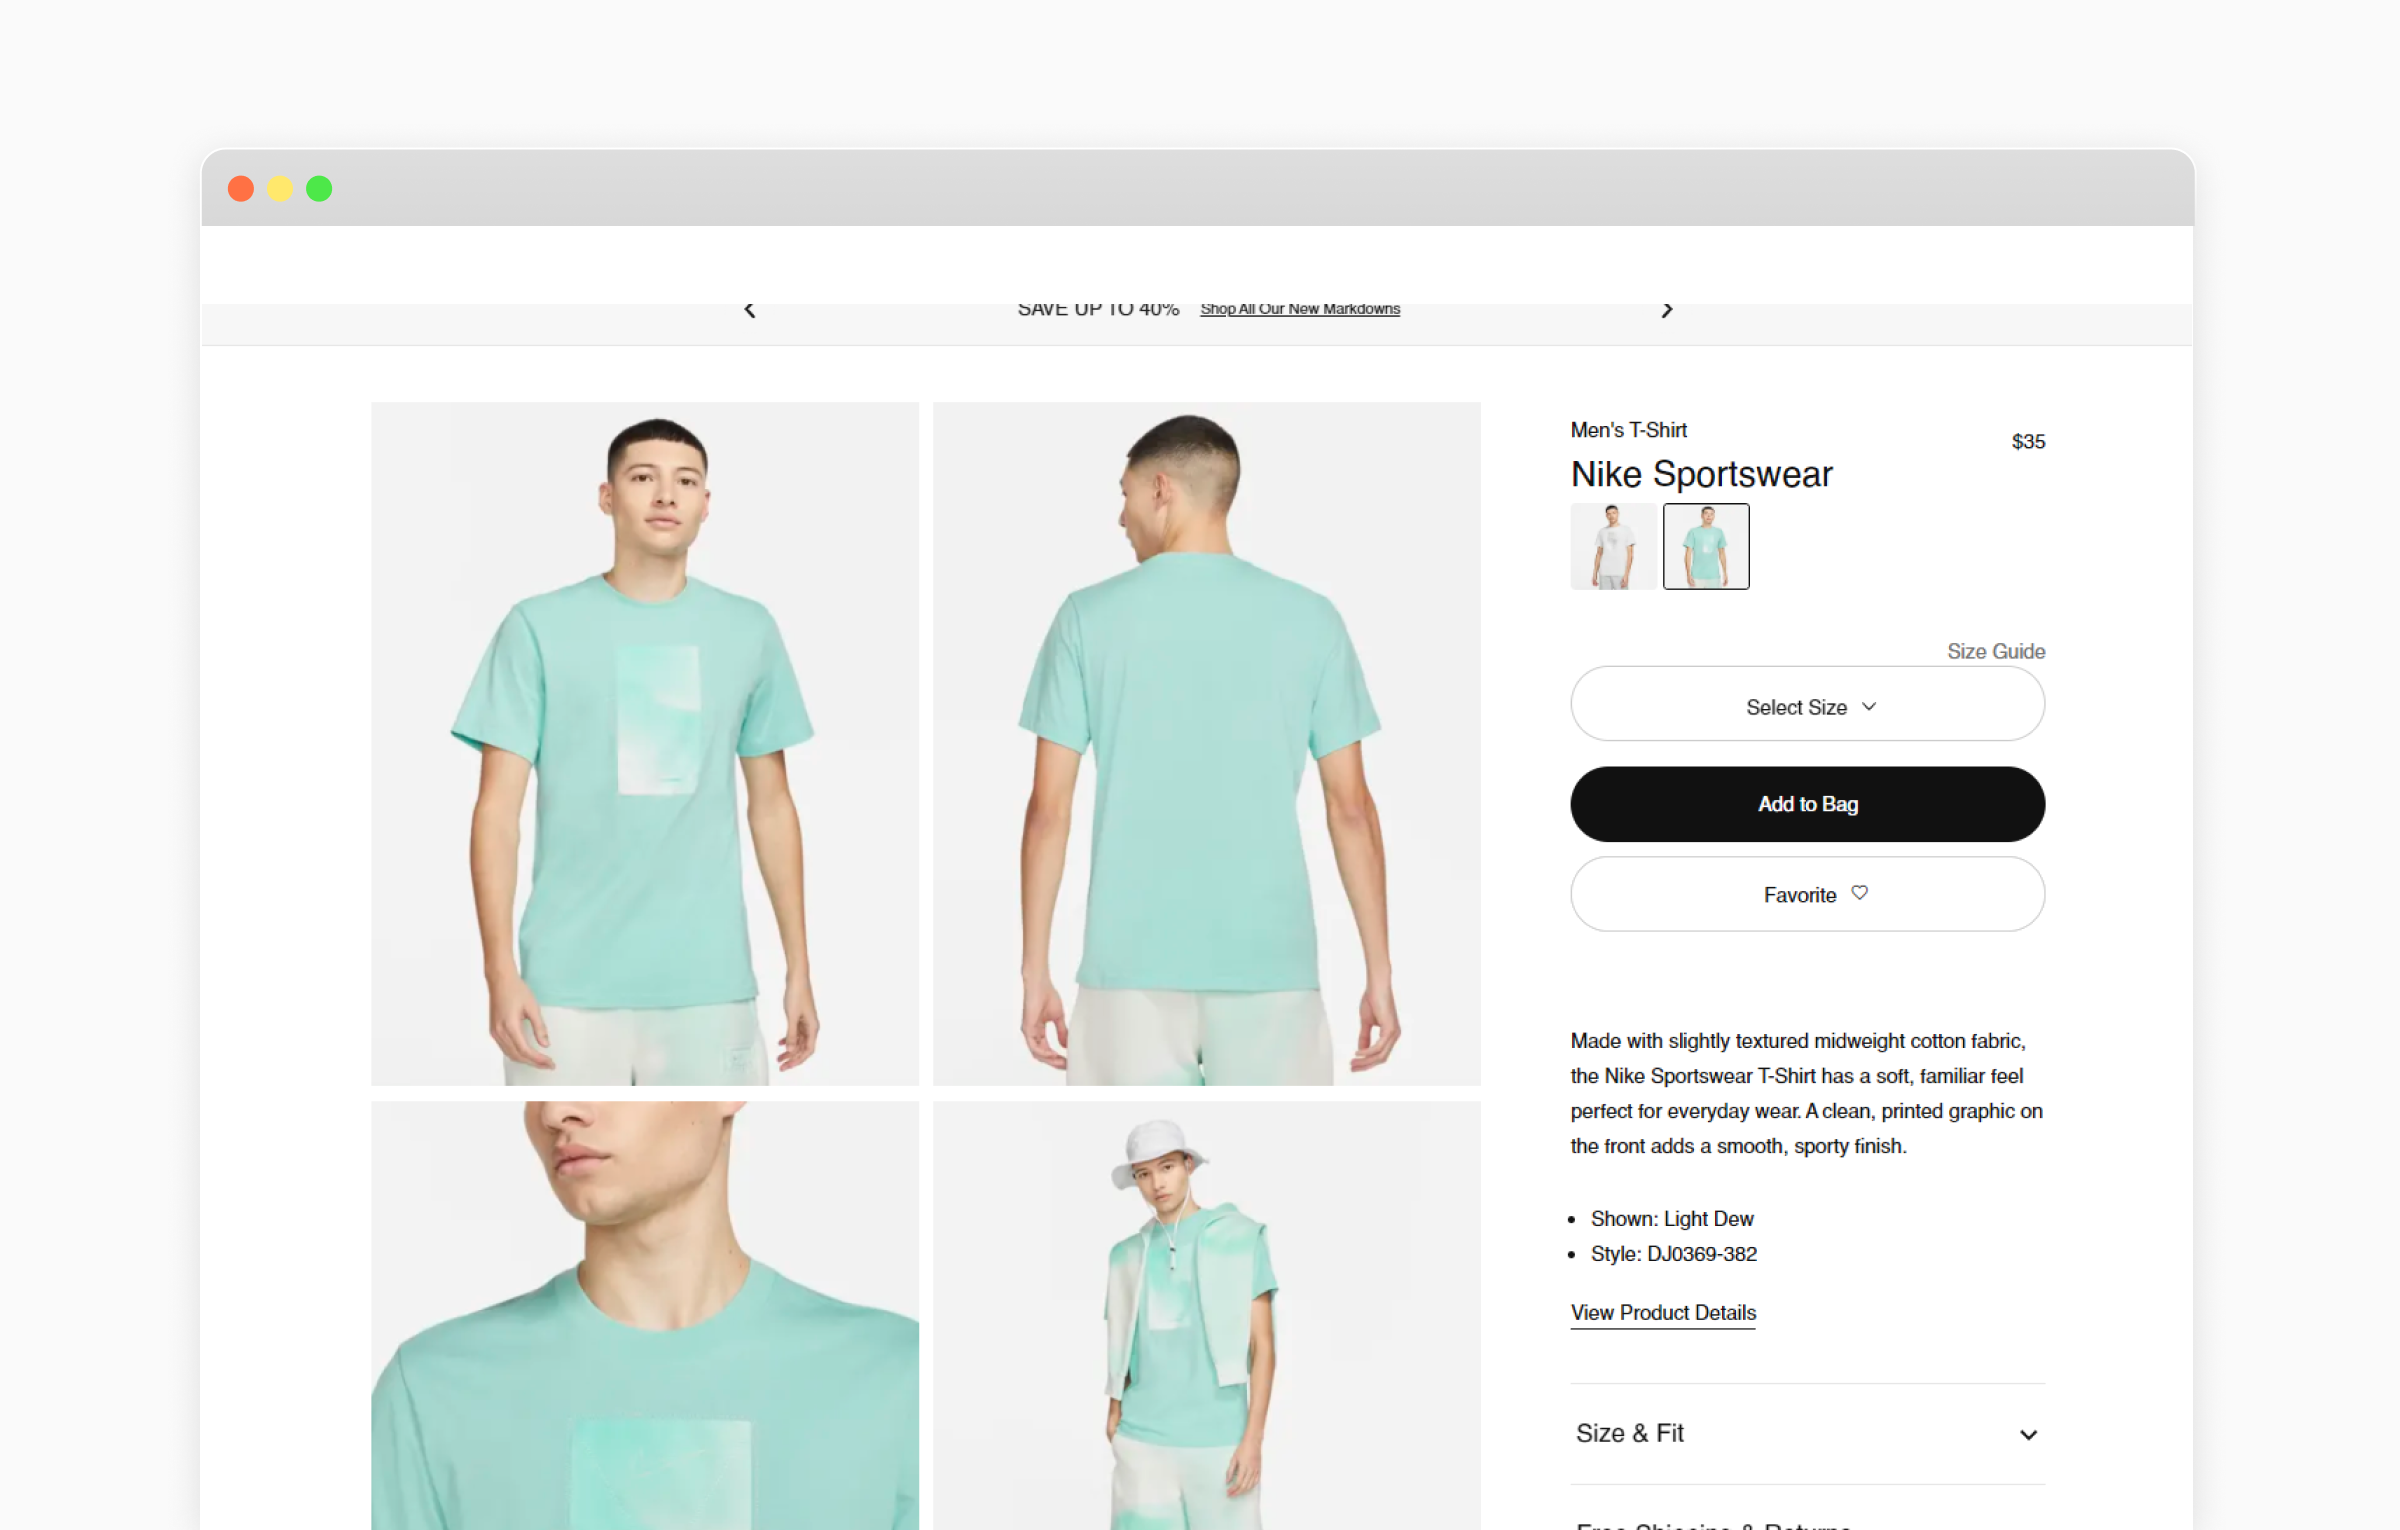 product listing page design inspiration